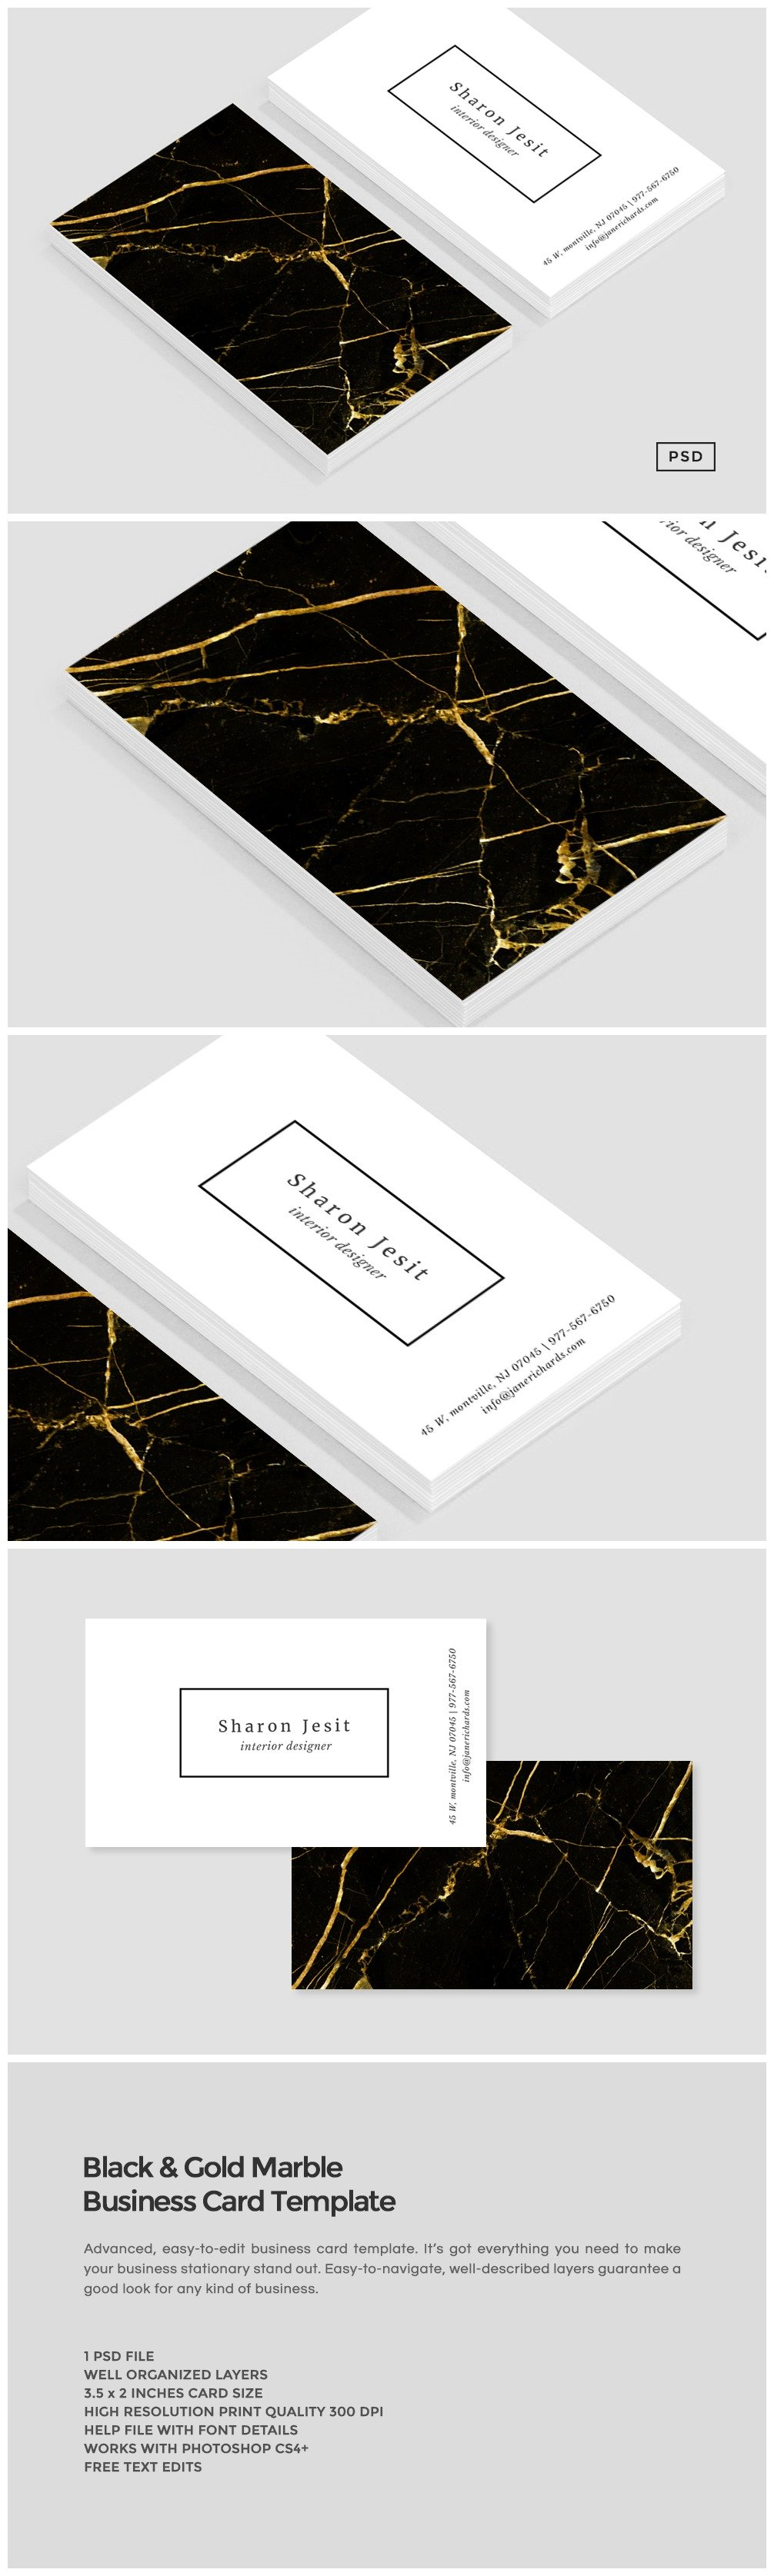 Black & Gold Marble Business Card ~ Business Card Templates ...